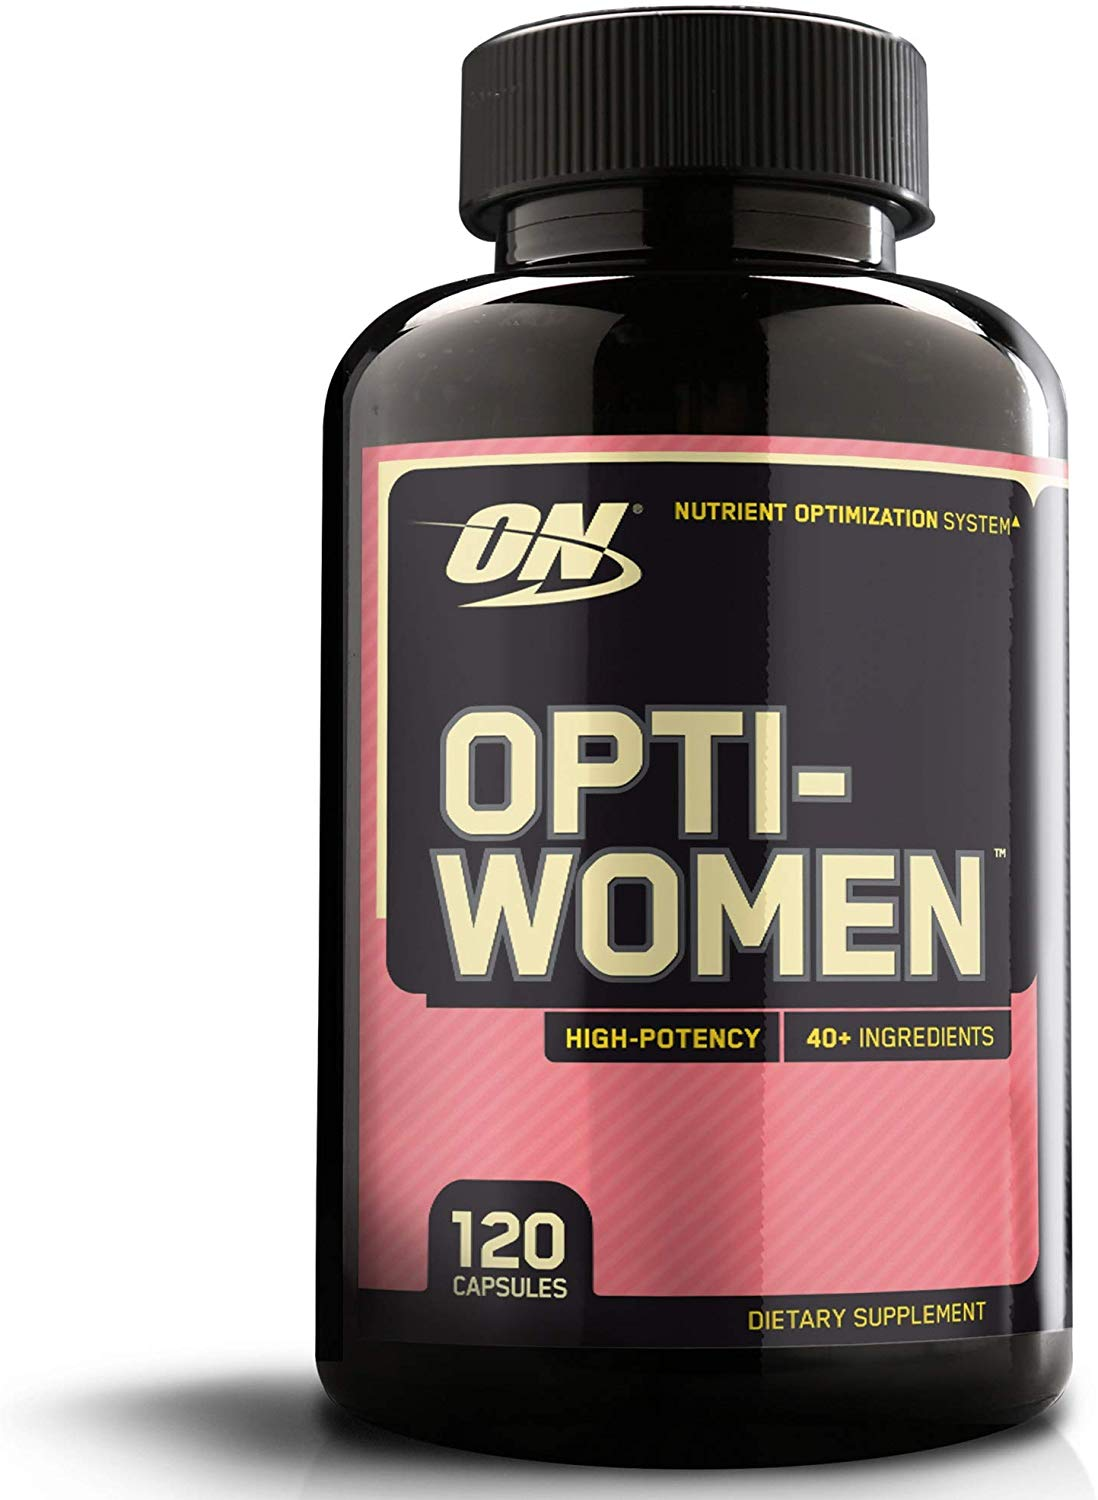 Bottle of Opti-Women